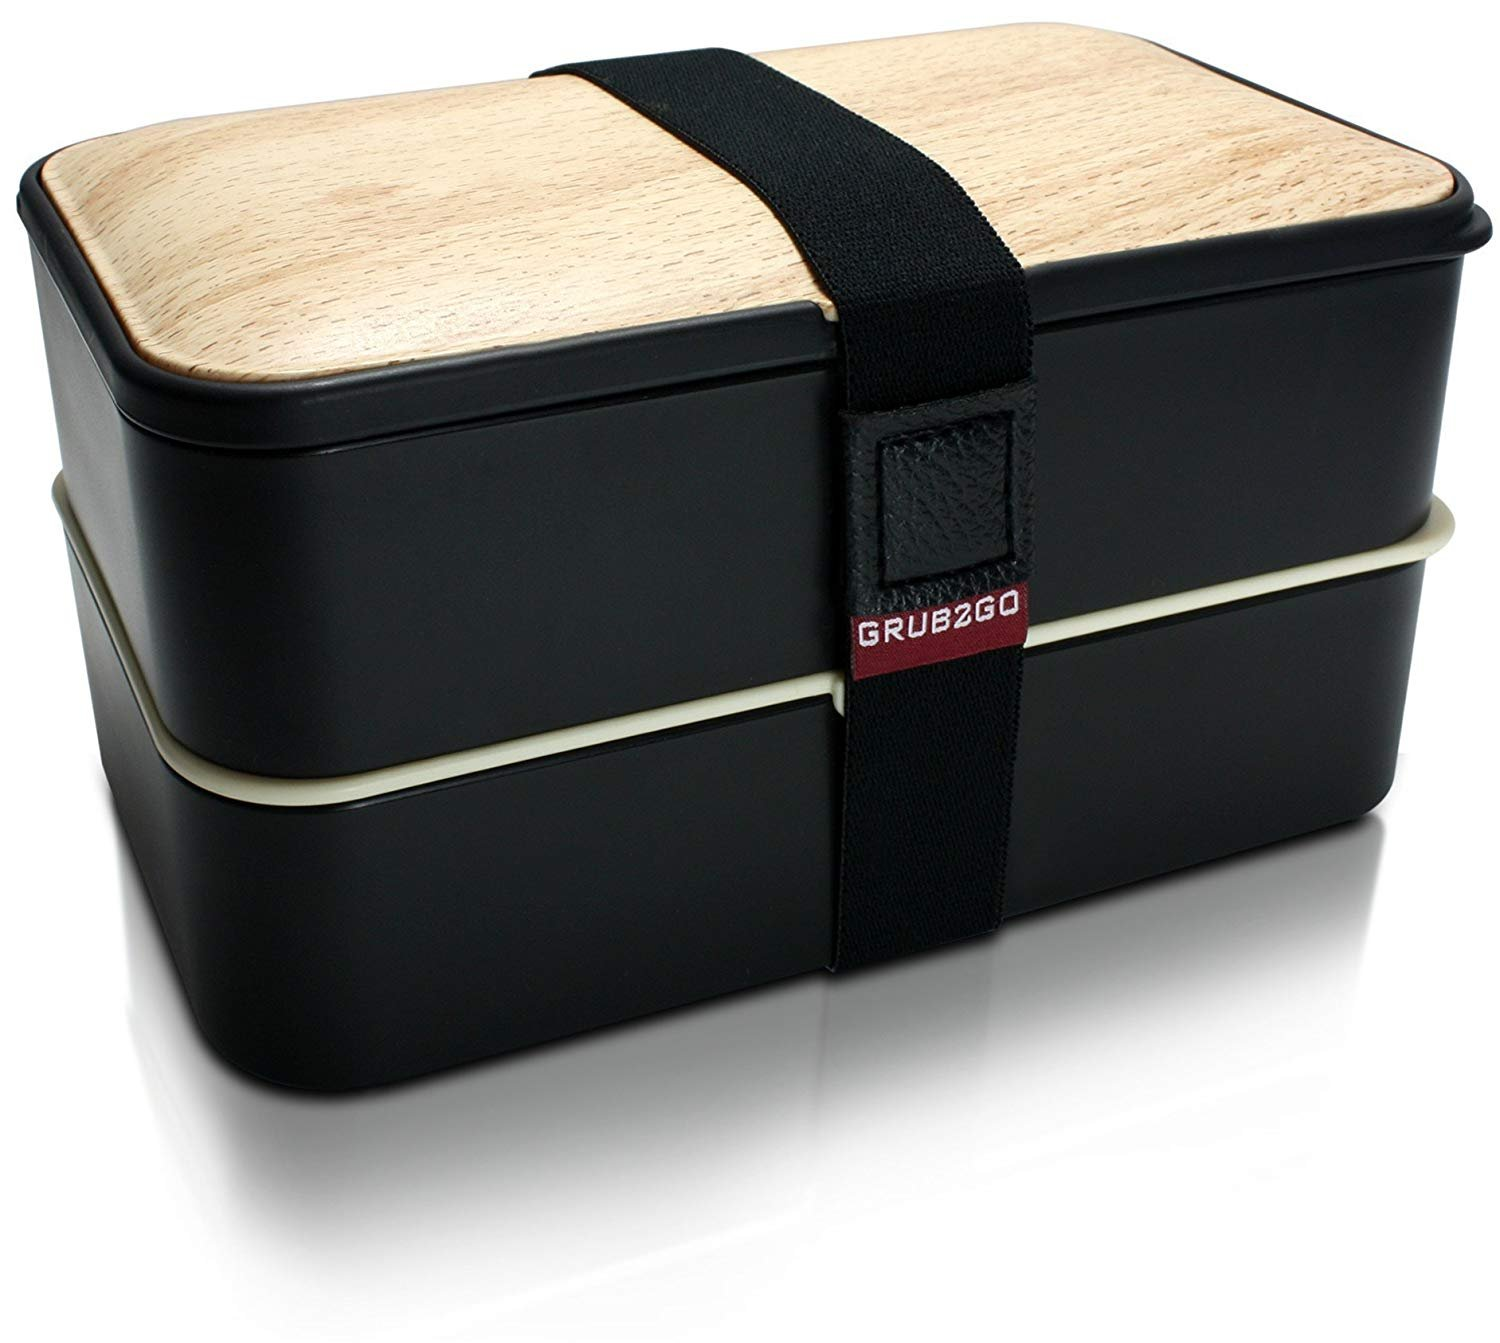 Japanese Traditional Bento Box by GRUB2GO w/FREE Bento Food Ideas Guide + Utensils - Leakproof Lunch Container - Black/Wood BNT100